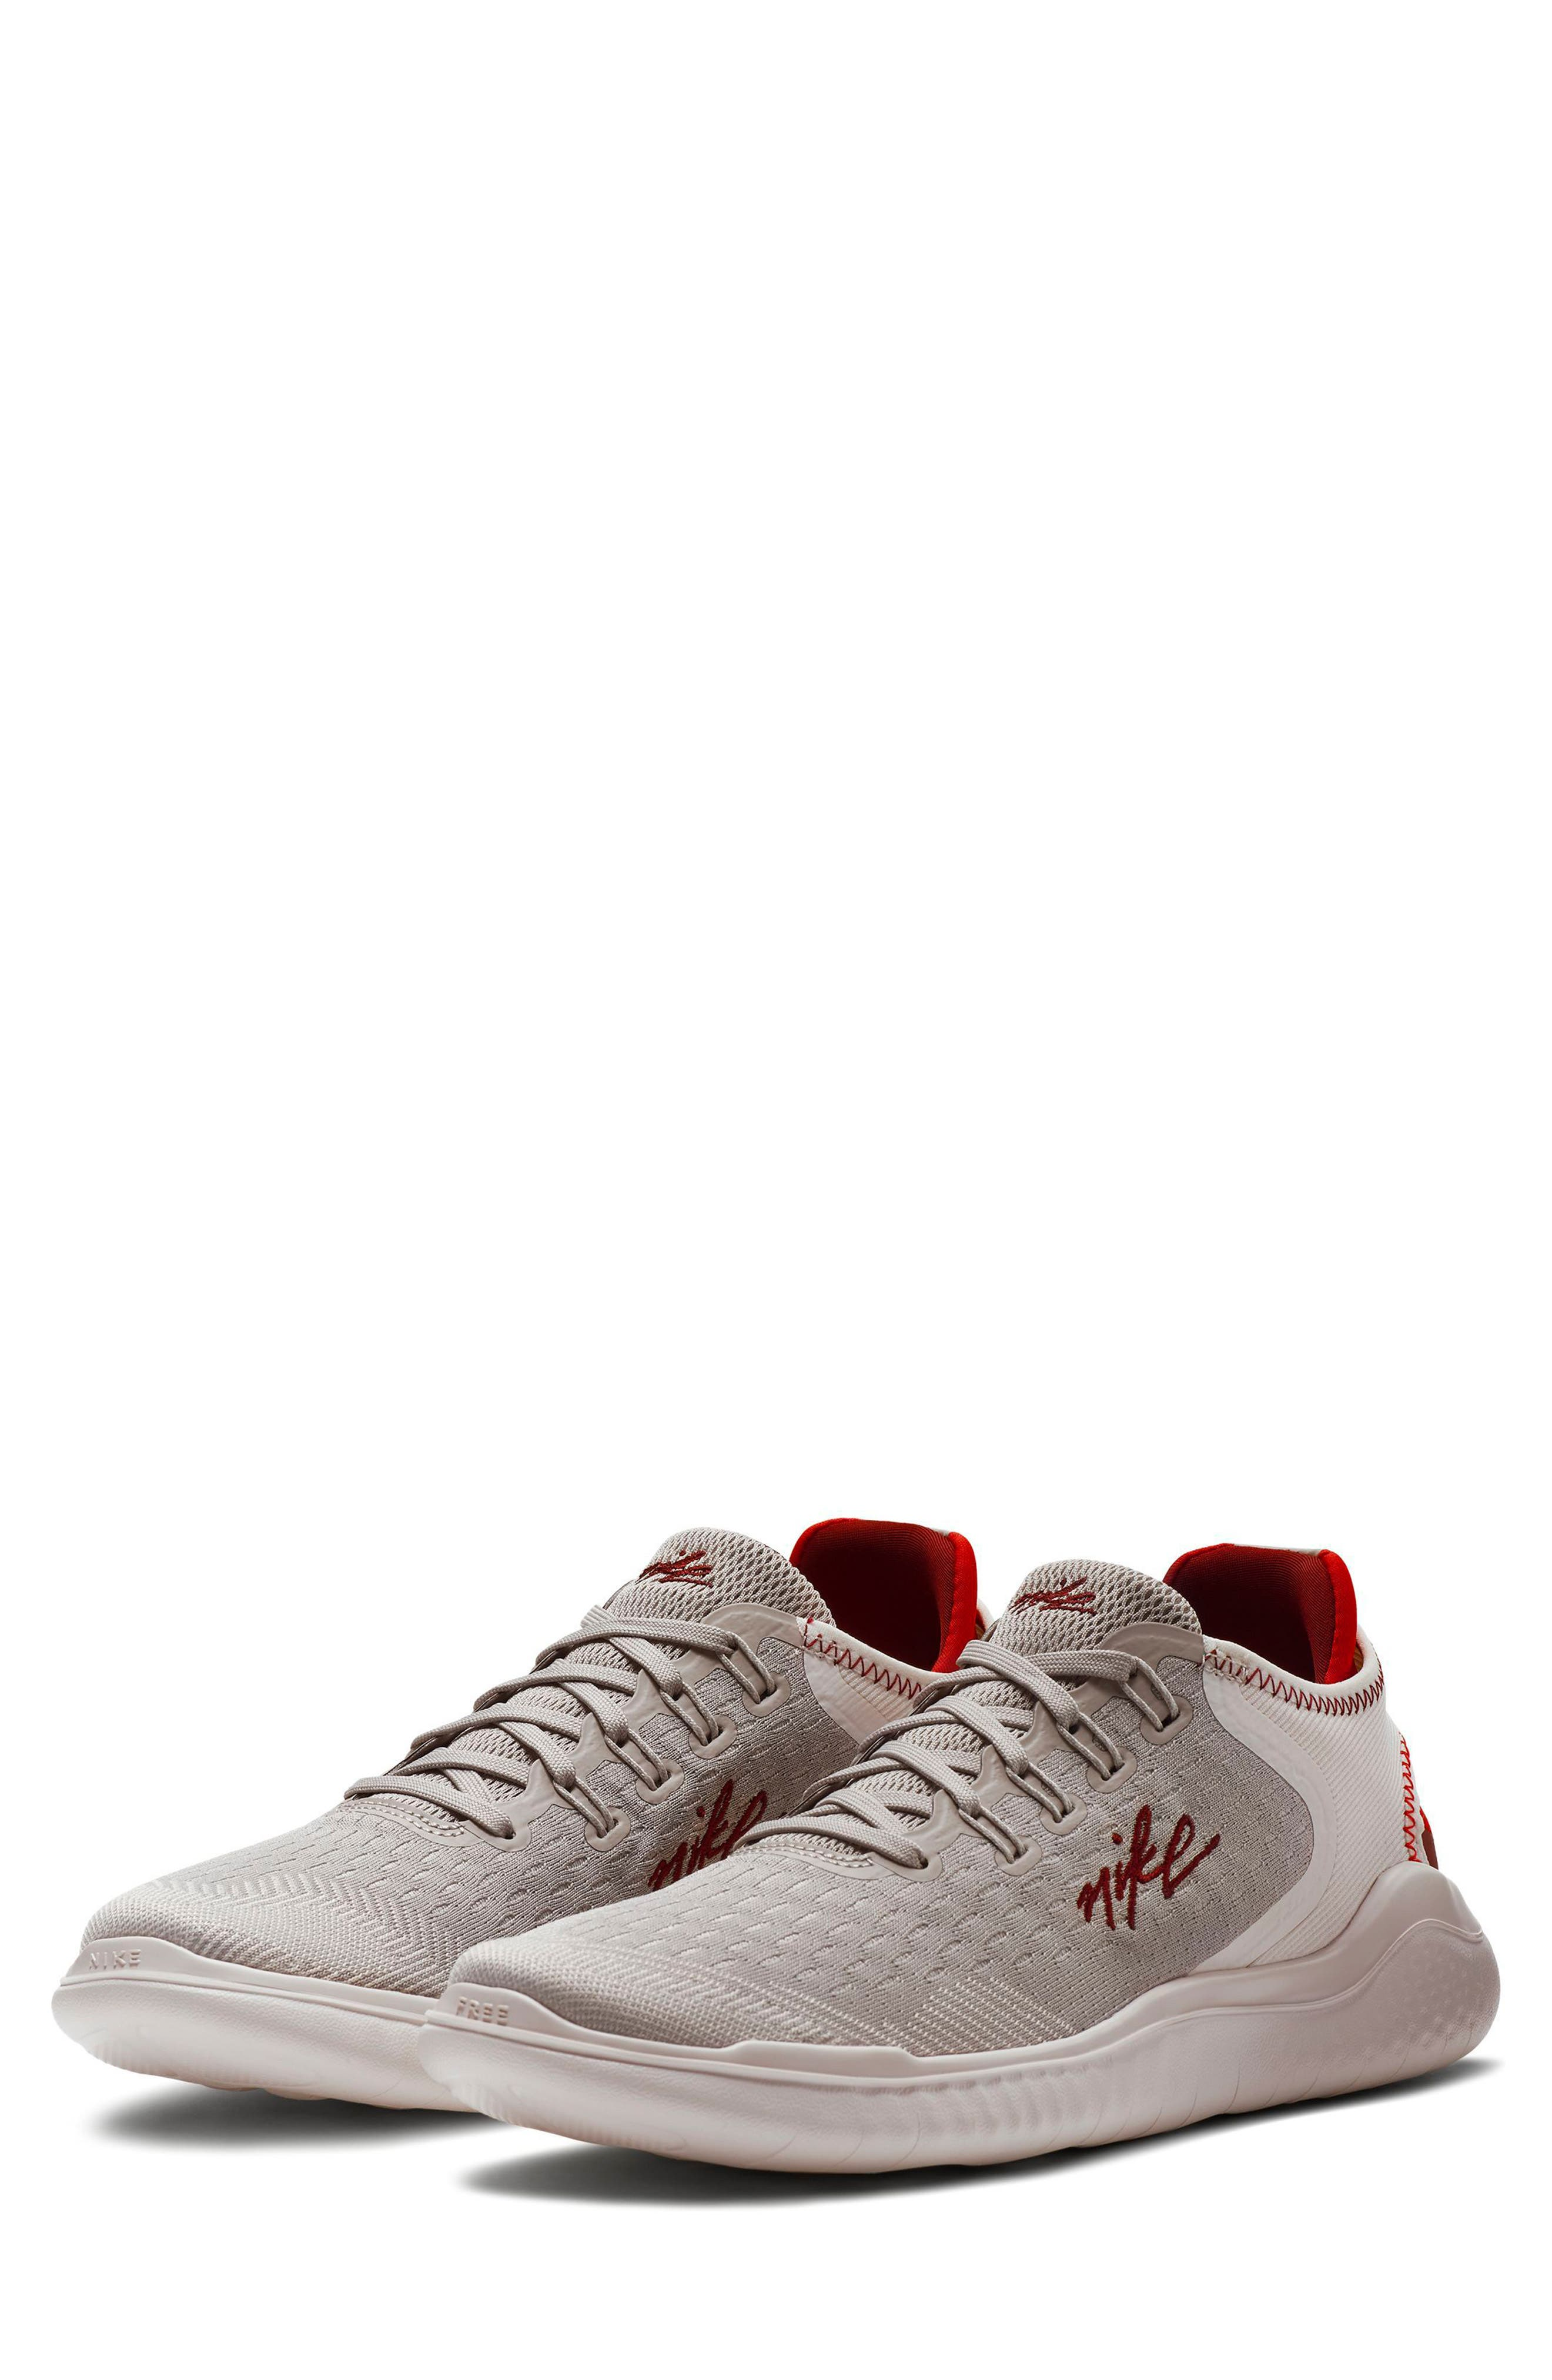 Free RN 2018 Running Shoe,                         Main,                         color, Moon Particle/ Team Red